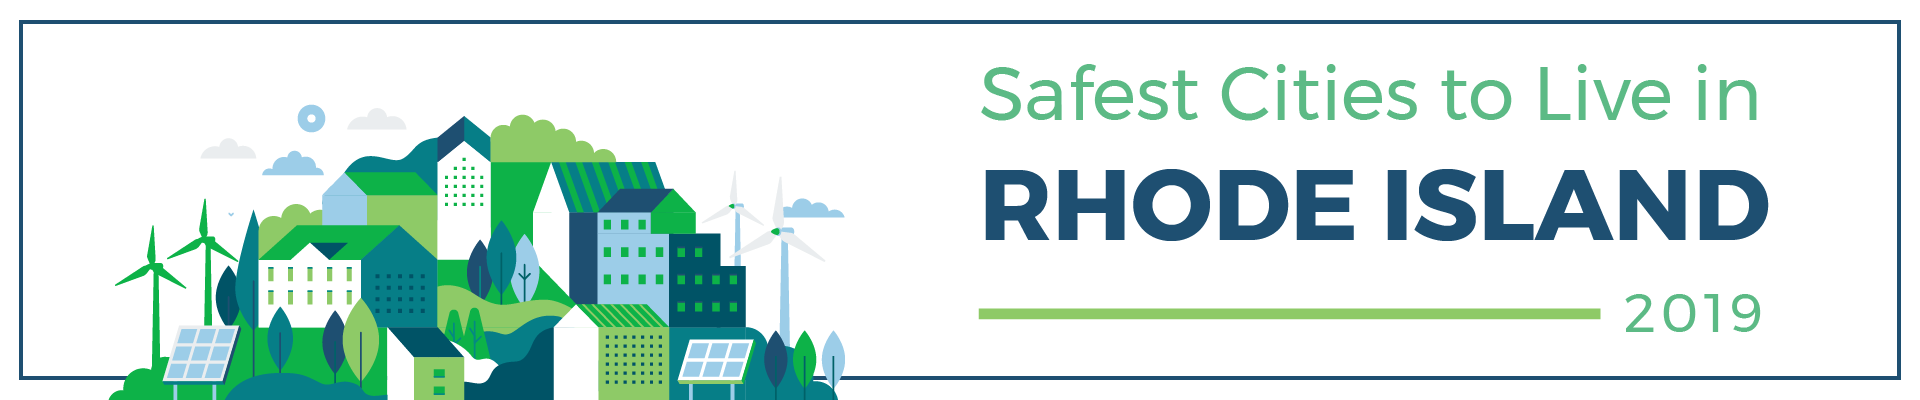 header - safest_cities_rhode_island_2019